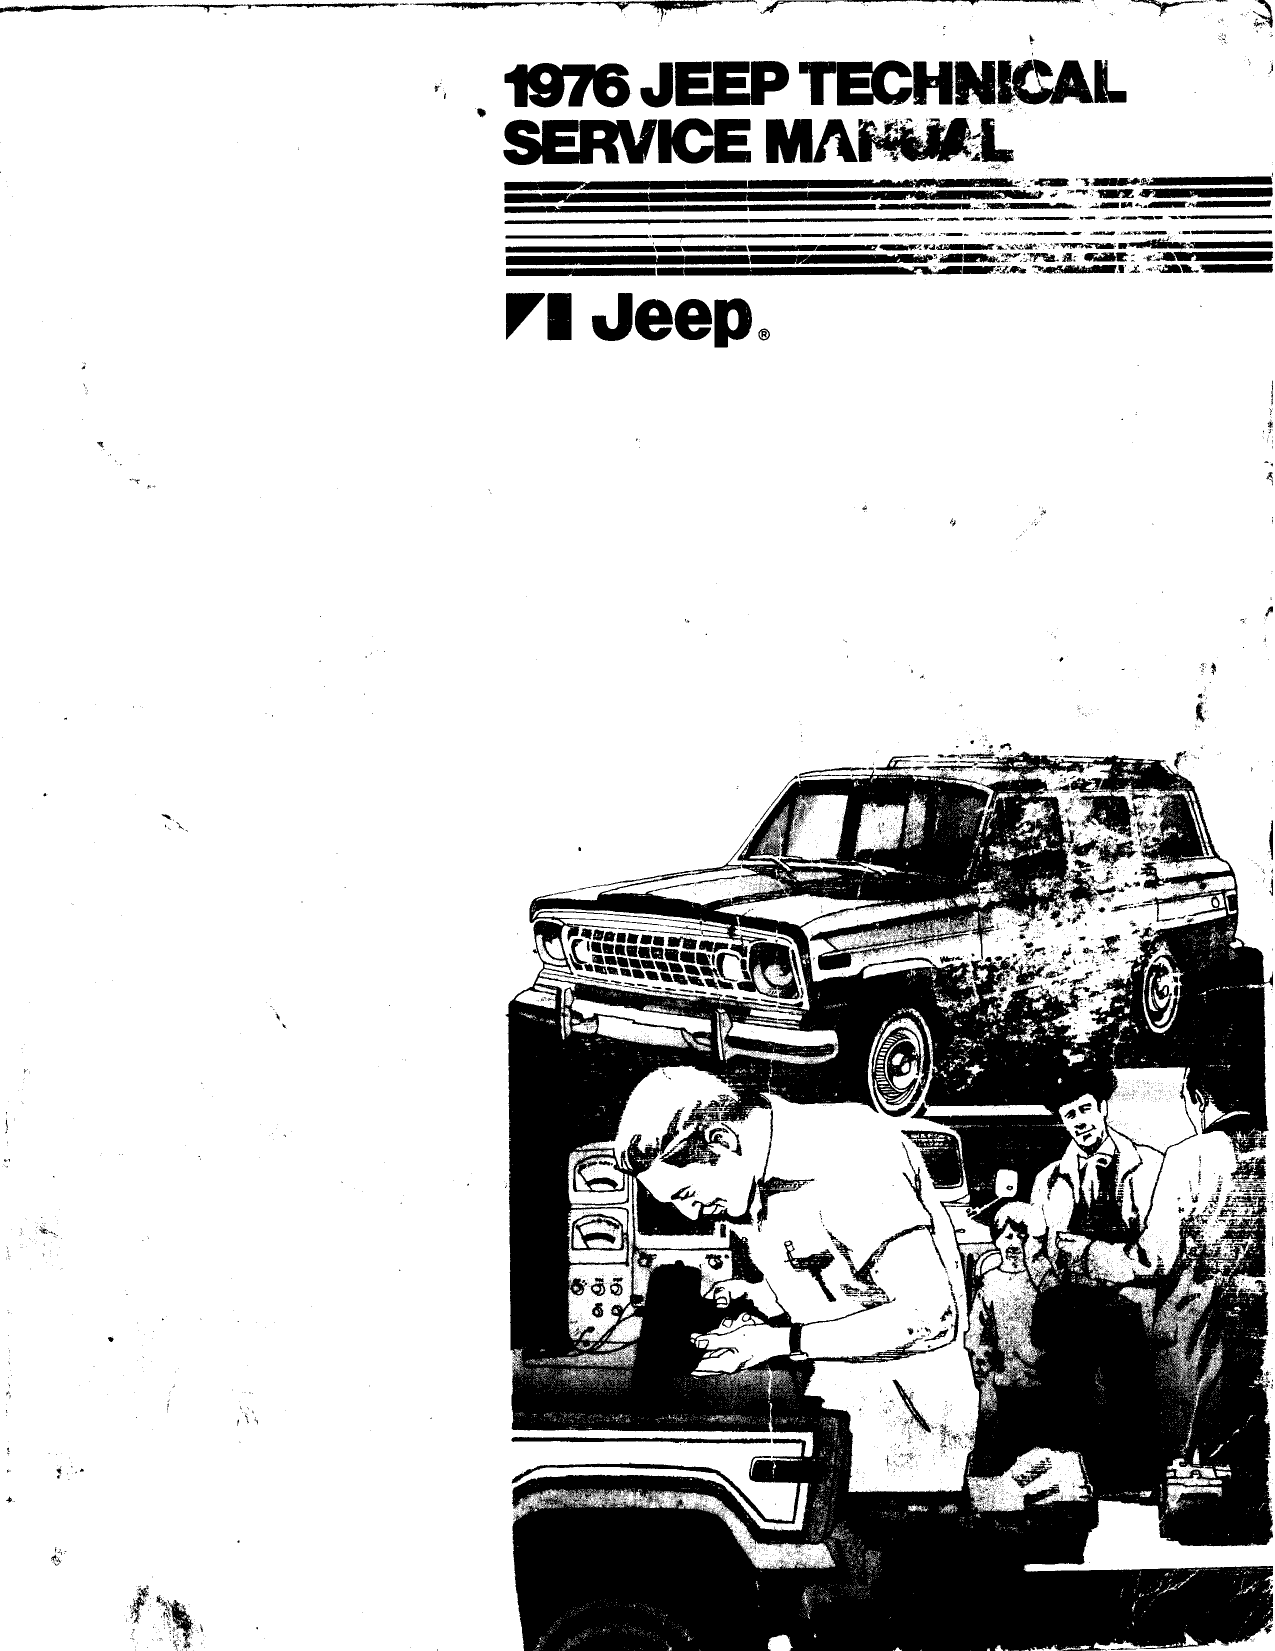 Technical Service Manual January 1975